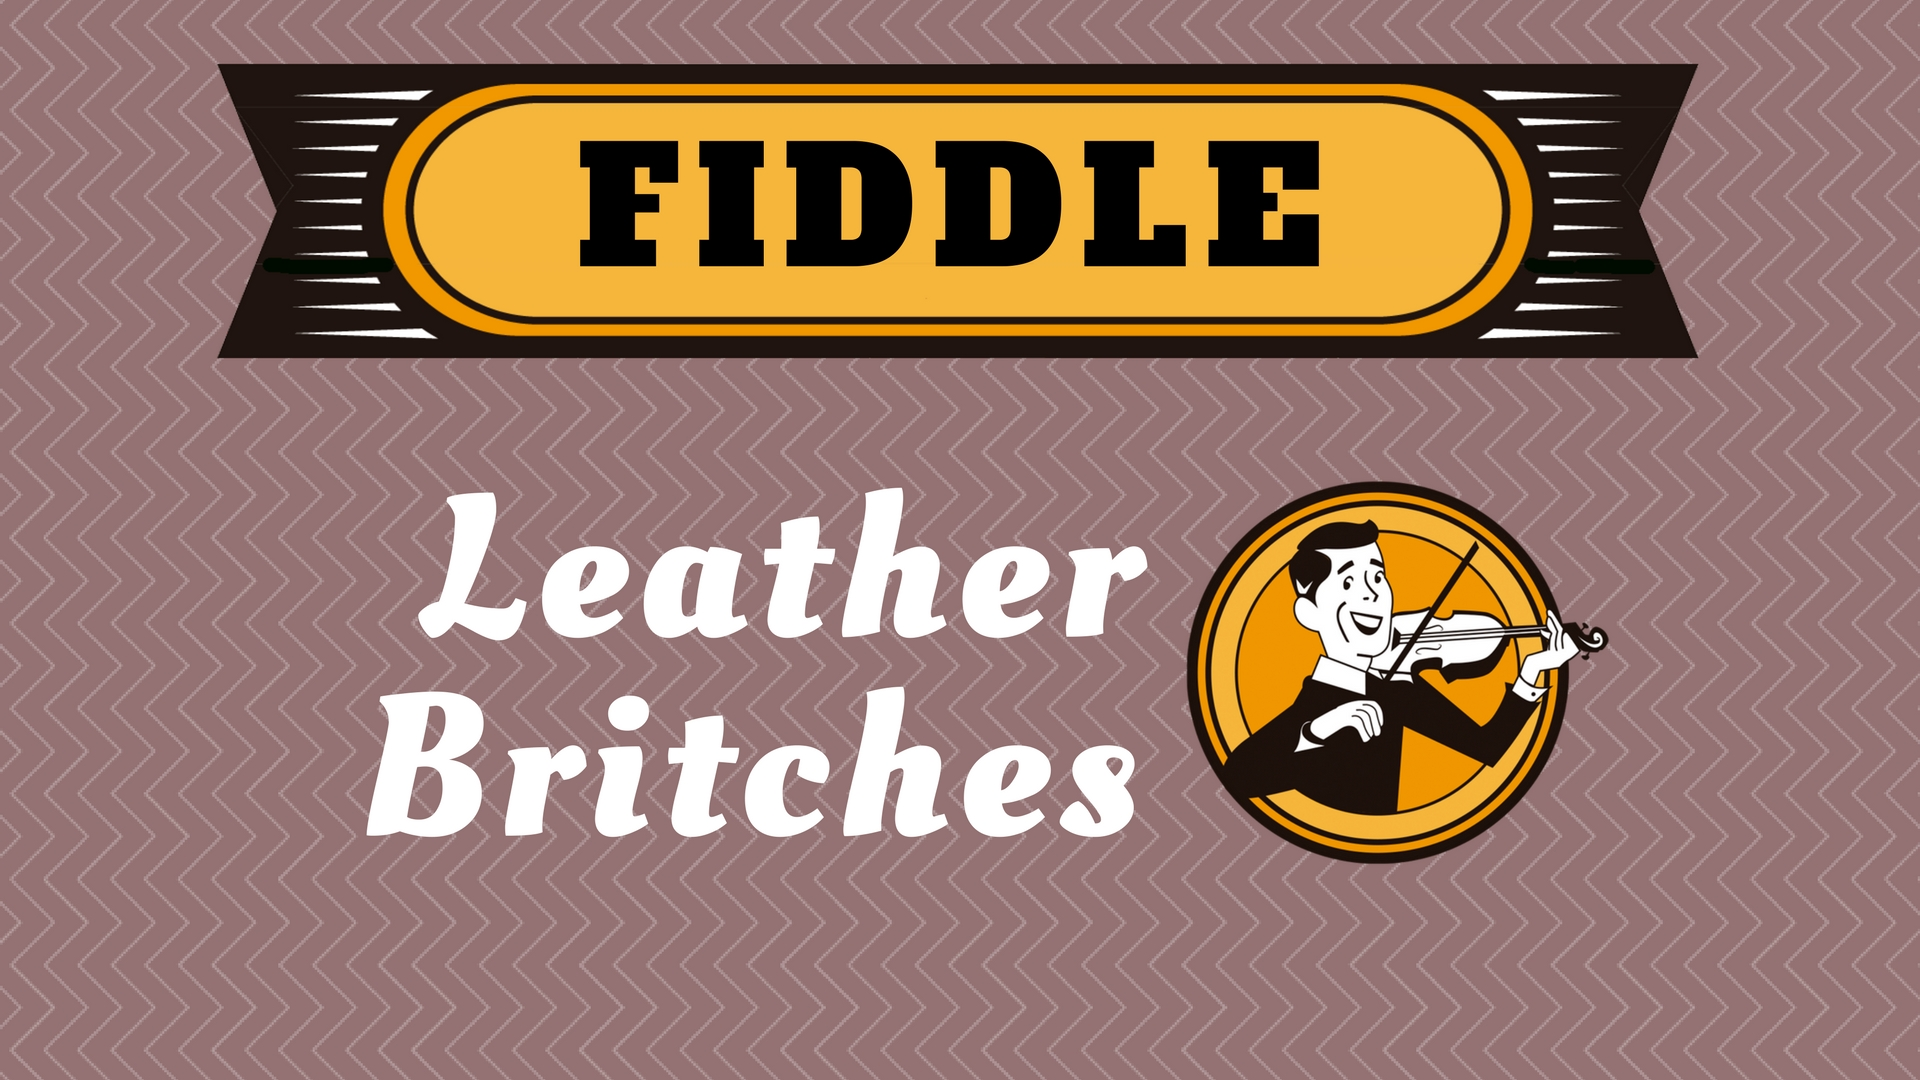 Fiddle Leather Britches